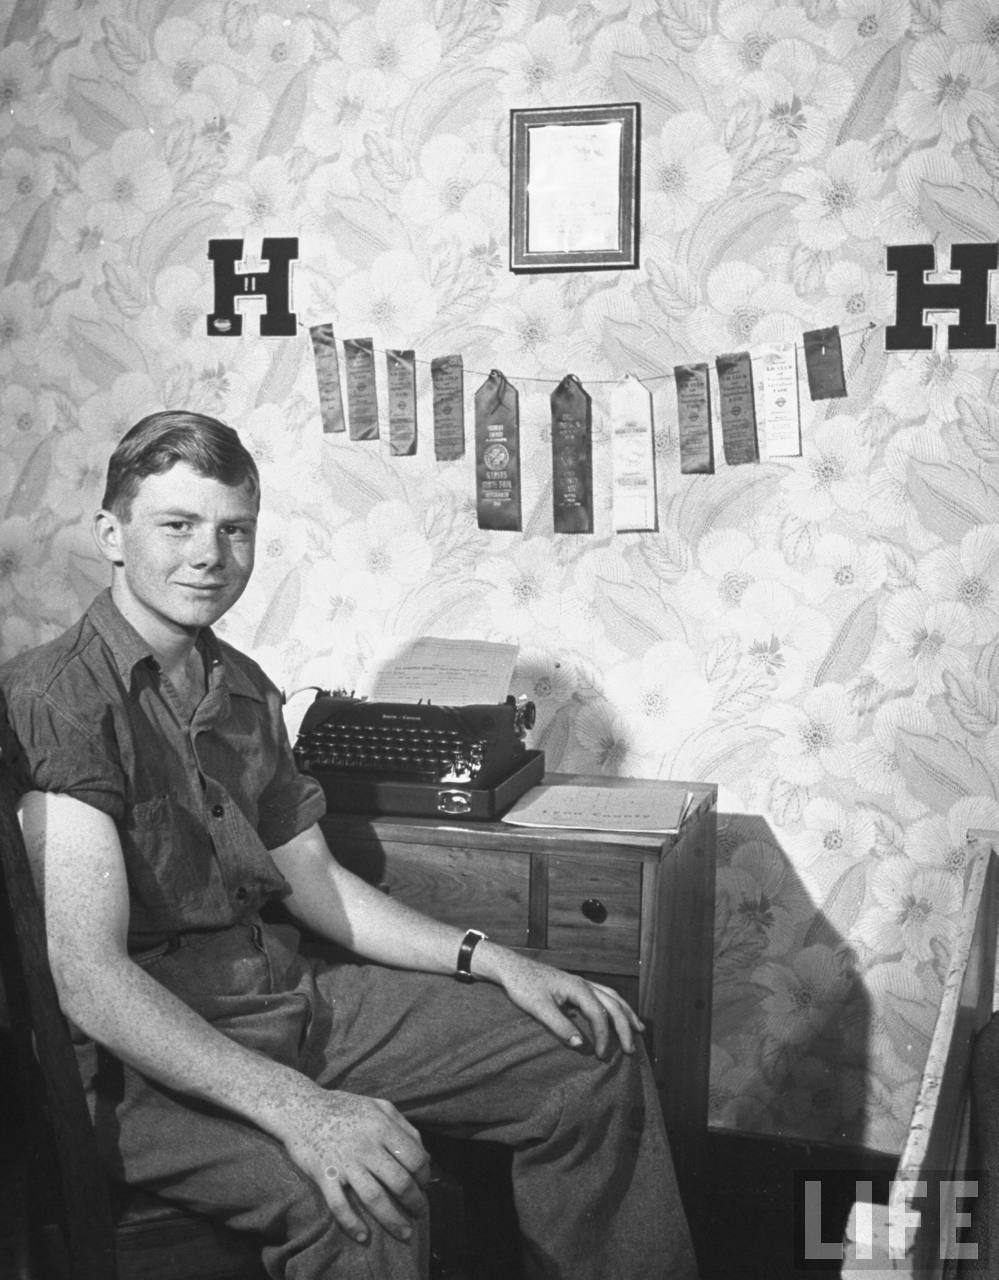 Kansas Farm Boy, Dan Gardner in his room seated at his desk with 4-H club ribbons awarded to him on his many projects.